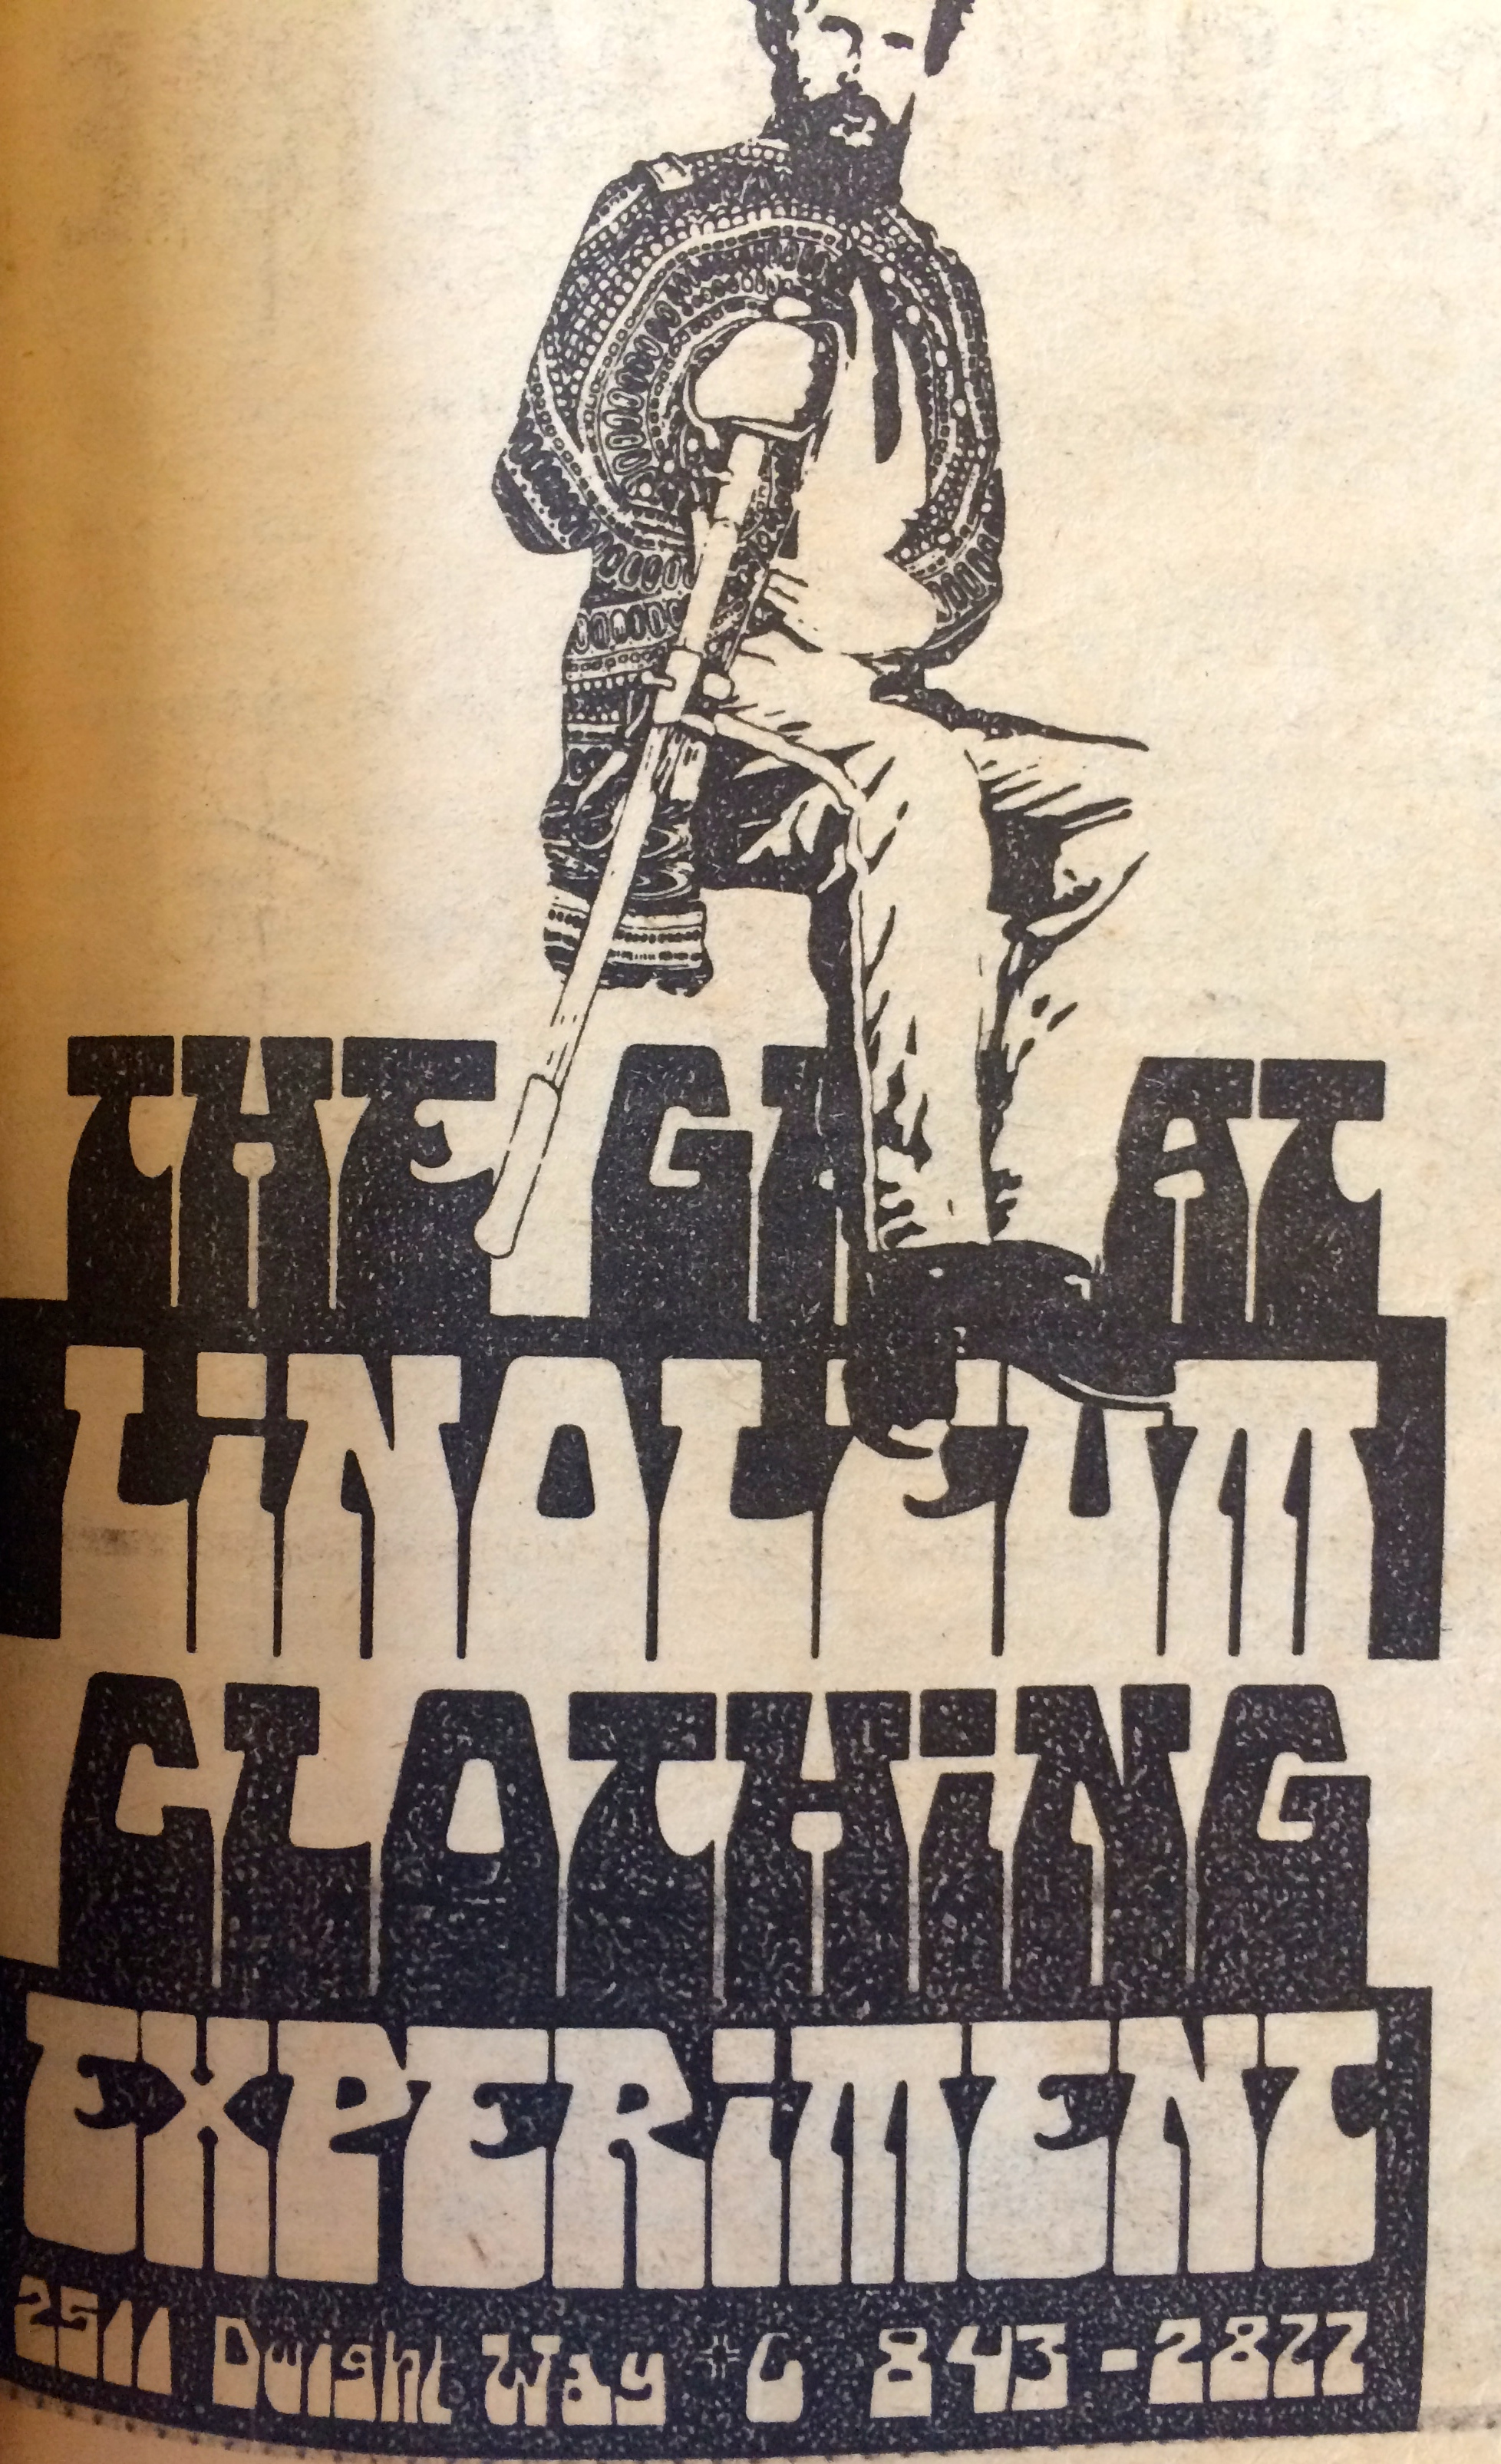 Great Linoleum Clothing copy